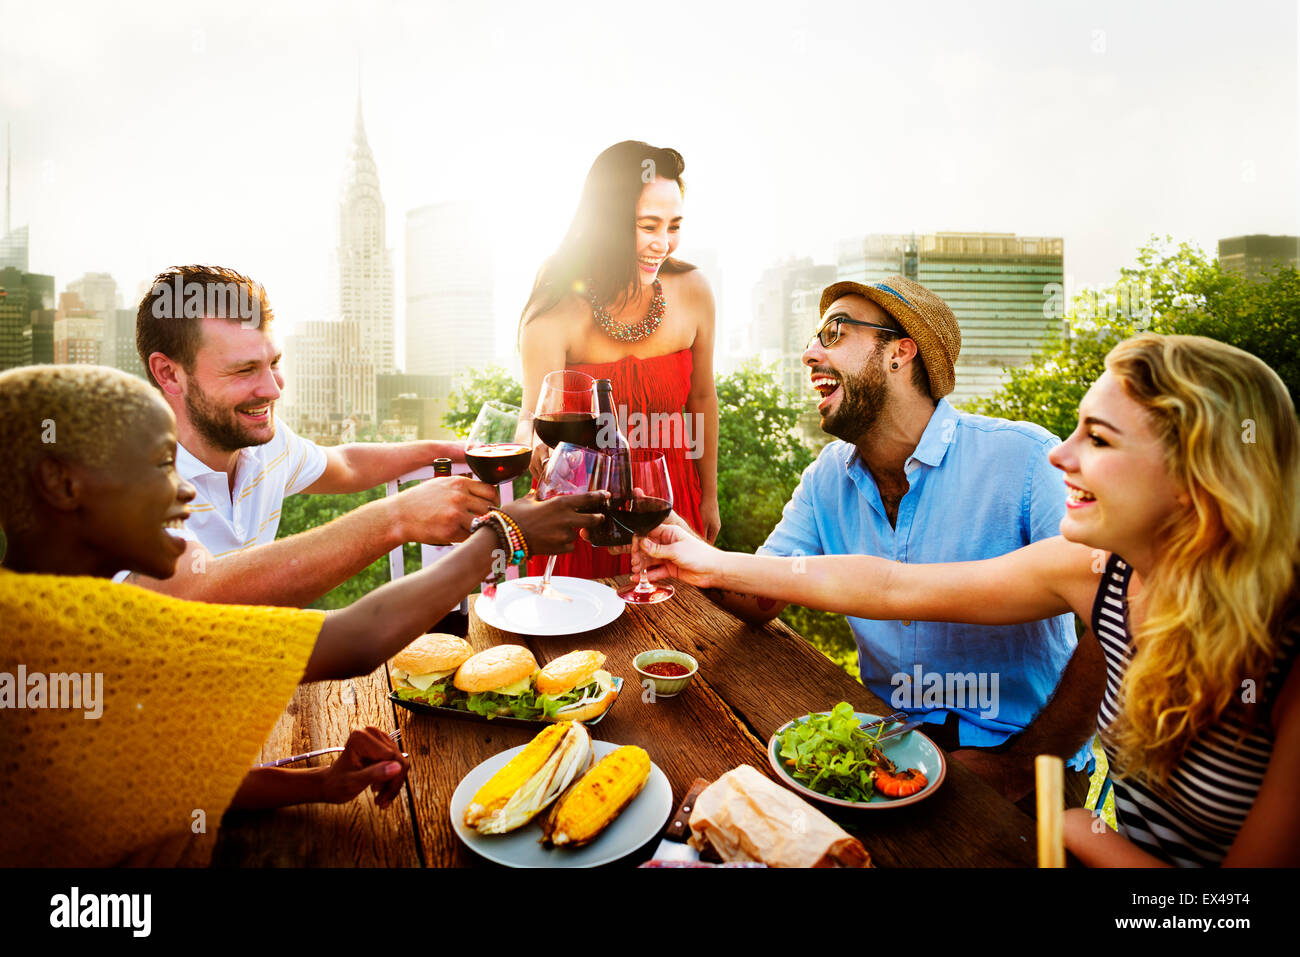 Celebration Friendship Rooftop Party Concept - Stock Image